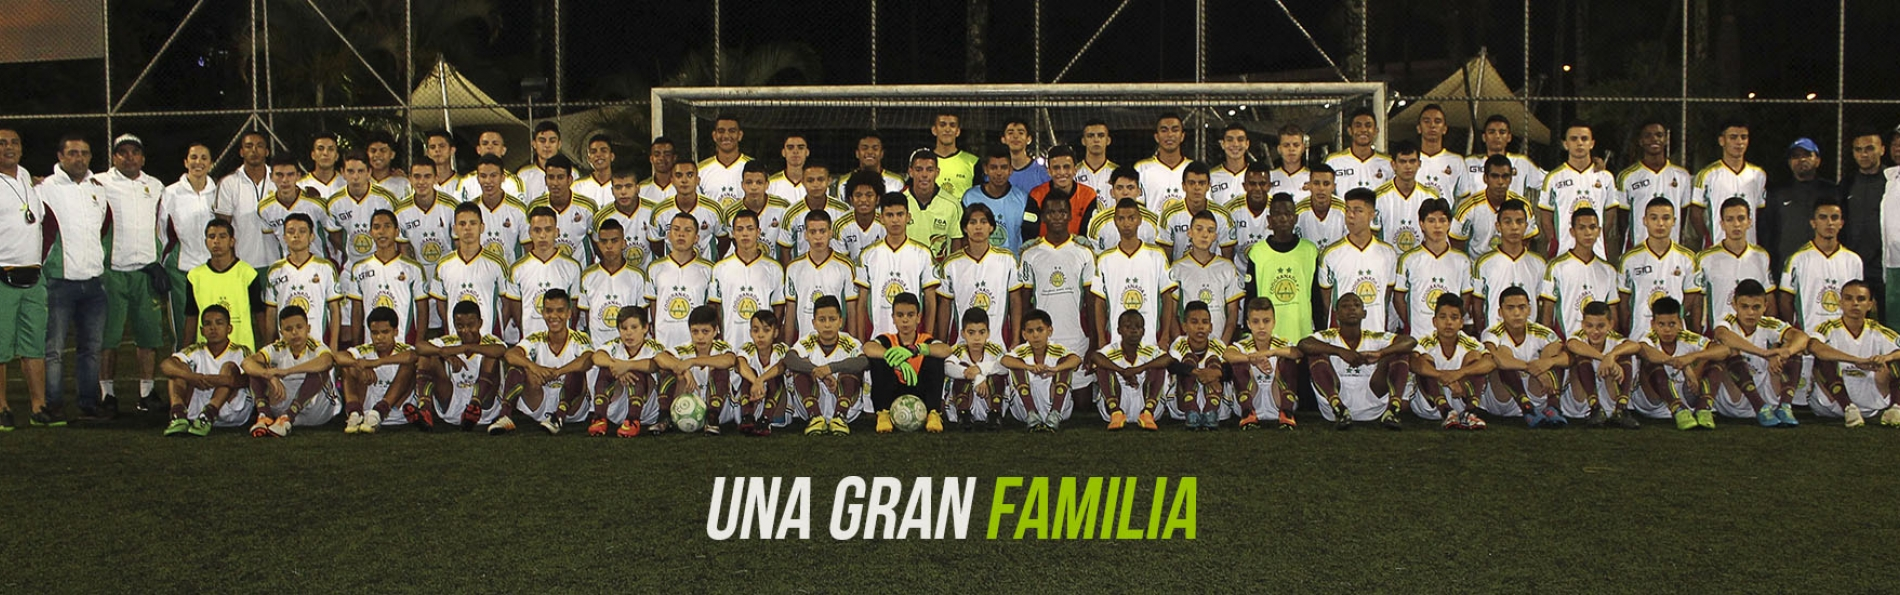 Familia Club Coogranada